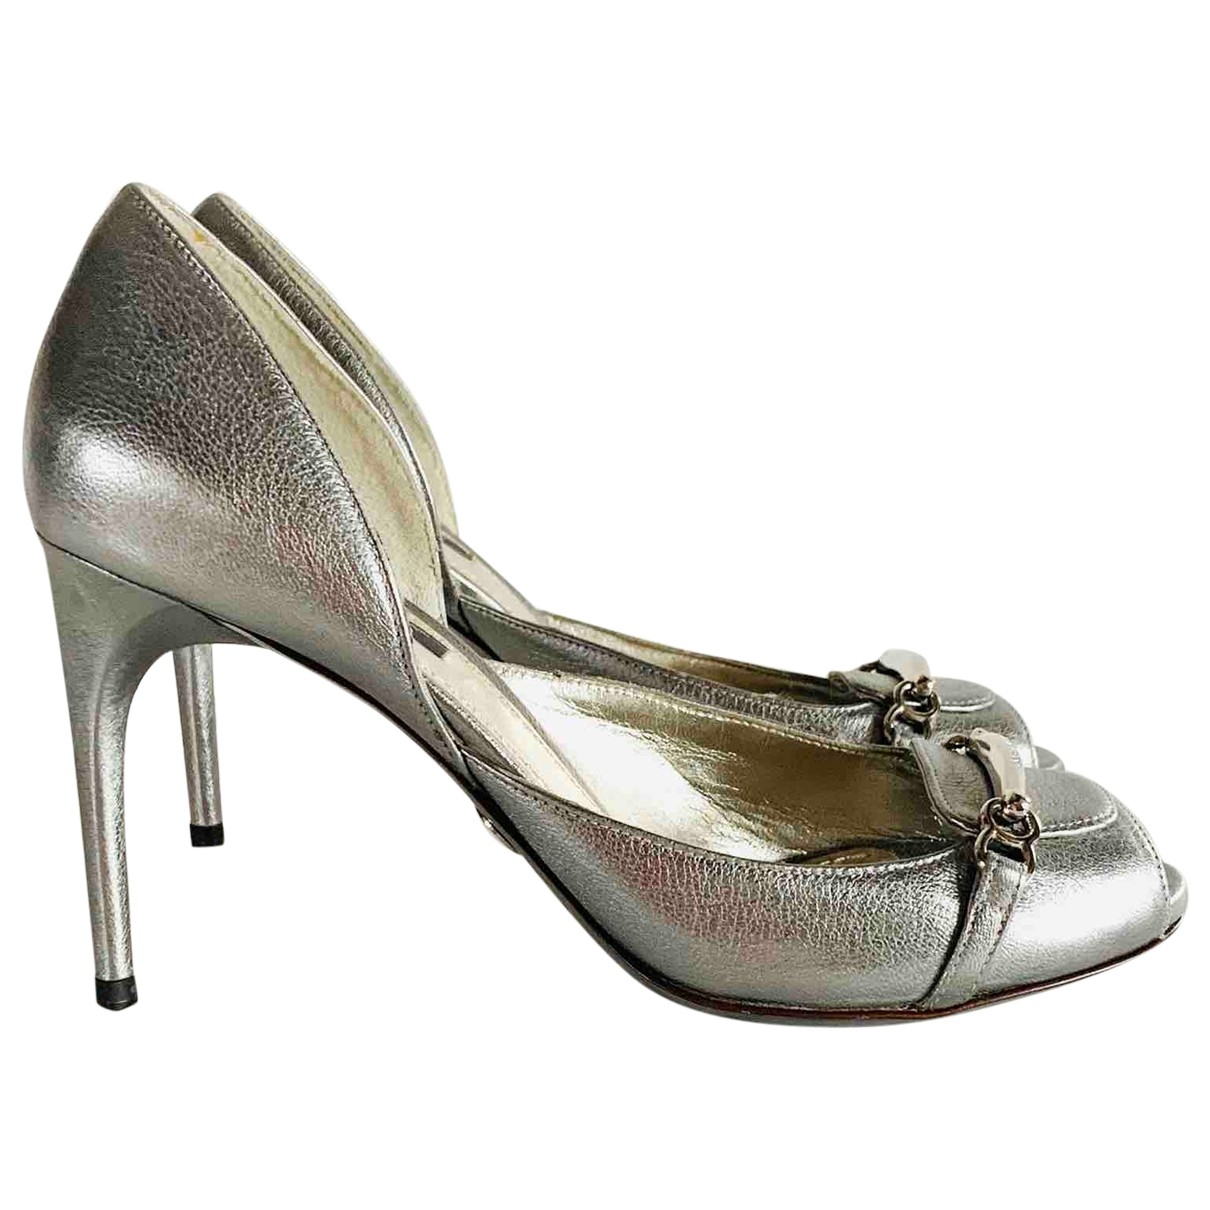 Dolce & Gabbana \N Silver Leather Sandals for Women 38 EU